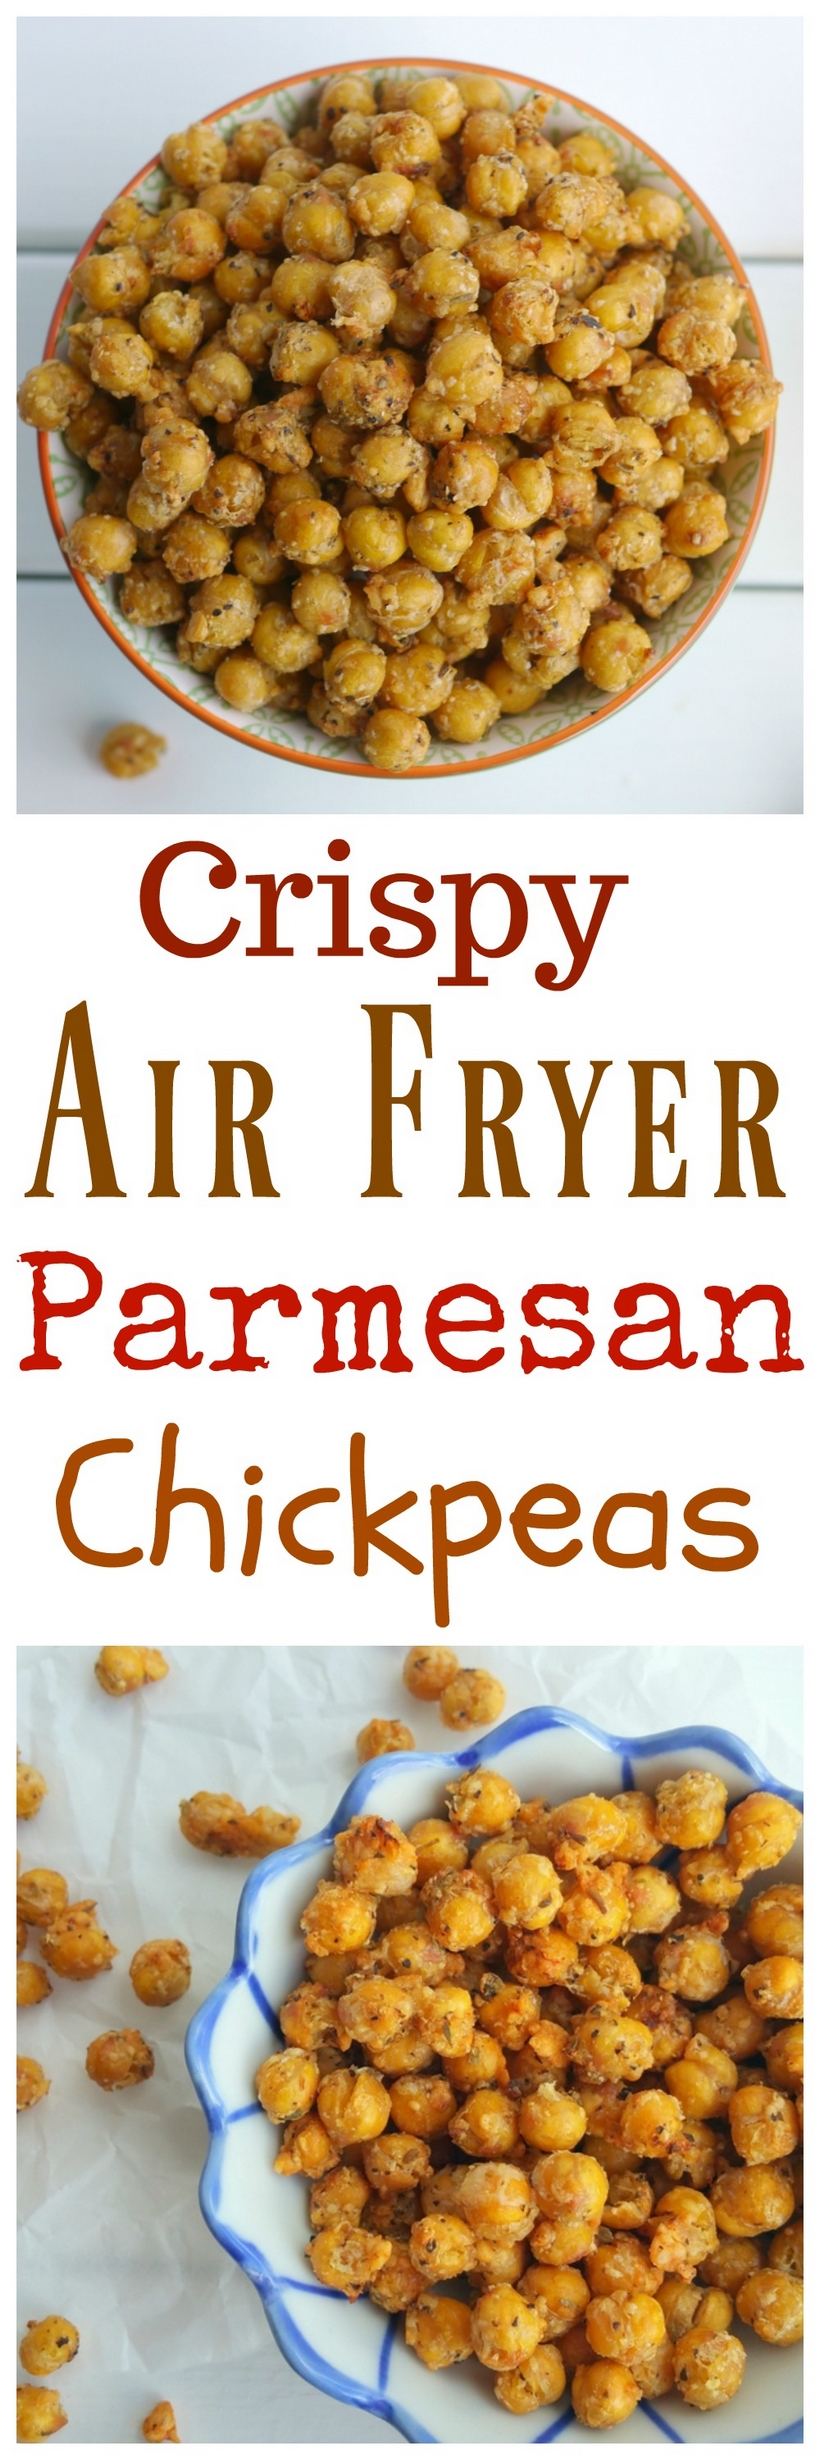 Crispy Air Fryer Parmesan Chickpeas #airfryer #chickpeas #garbanzobeans #glutenfree #plantbased